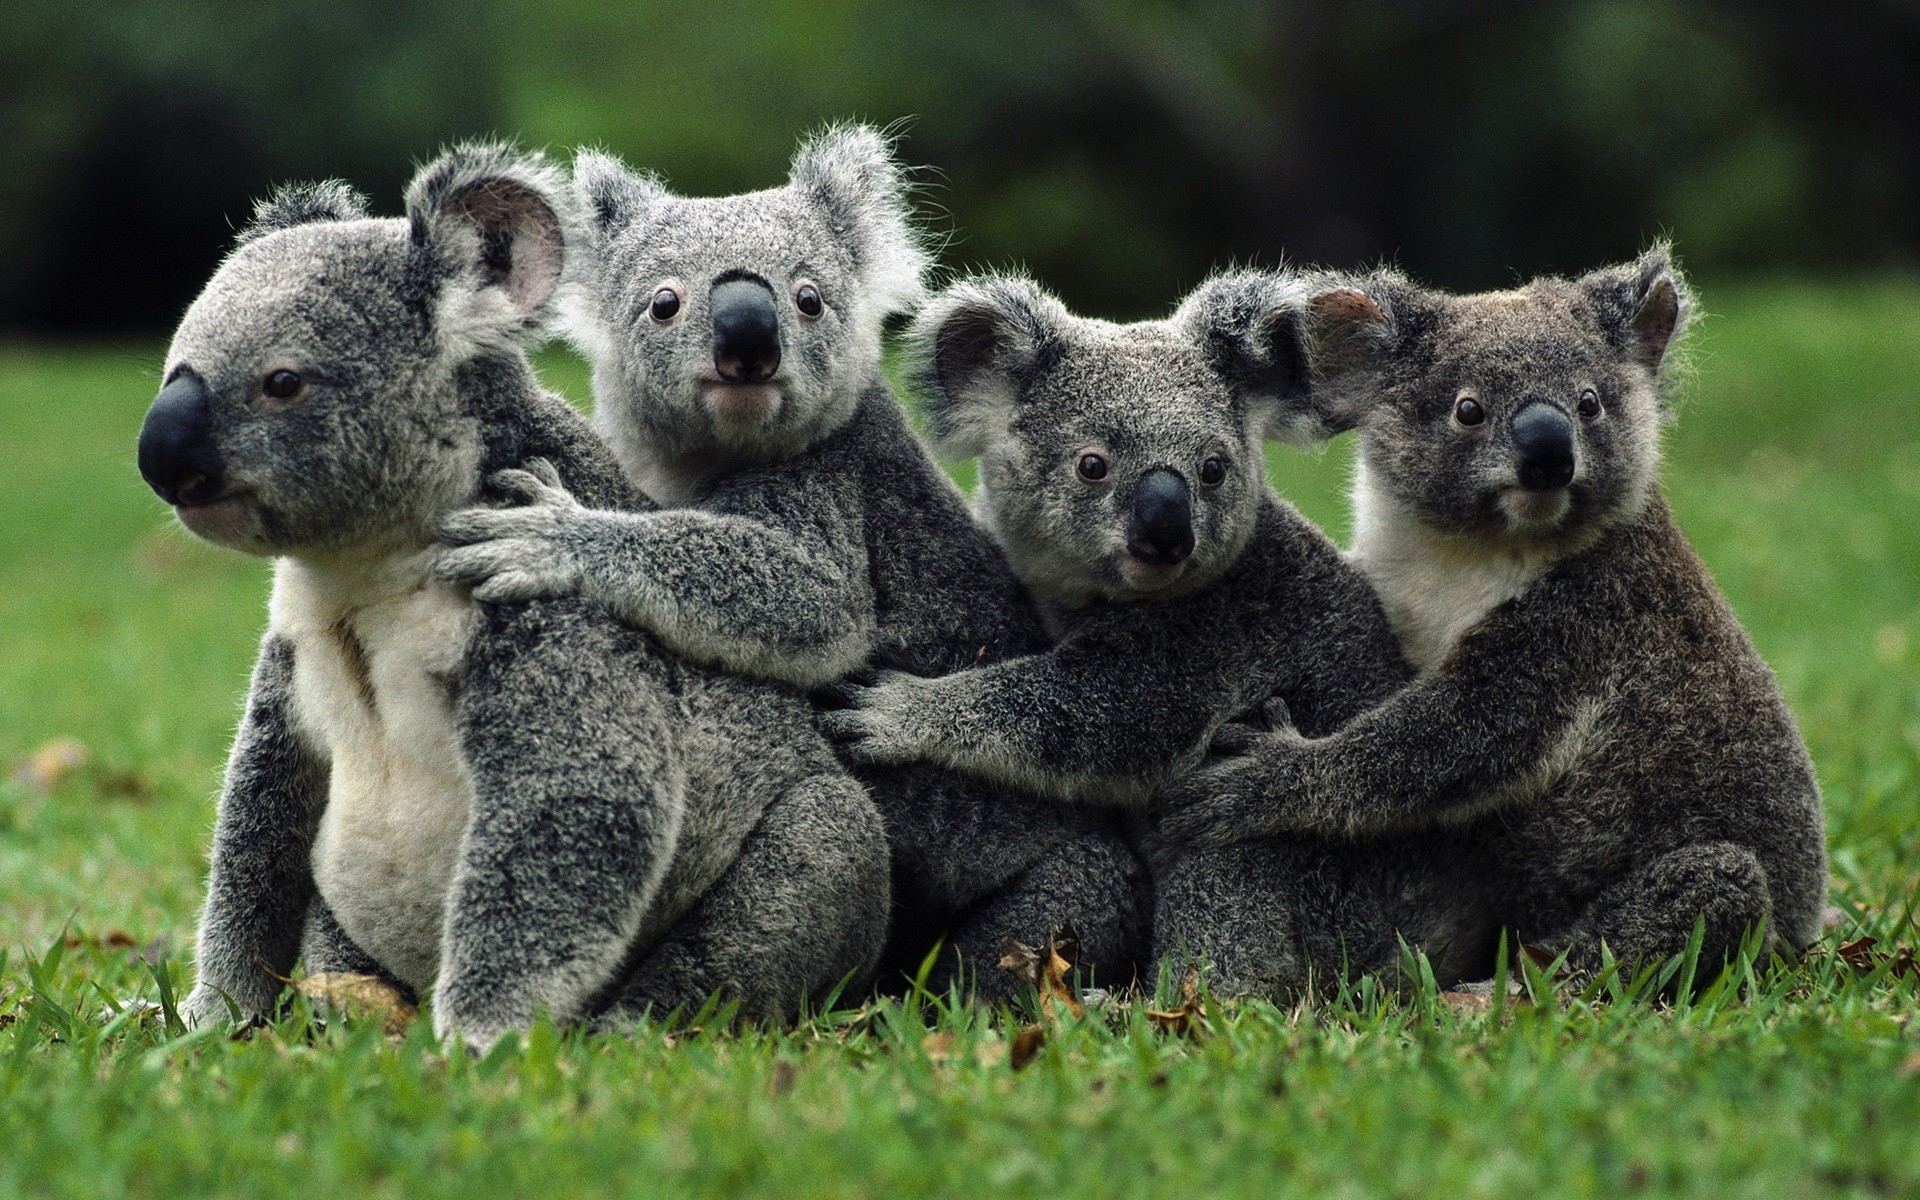 26407 download wallpaper Animals, Koalas screensavers and pictures for free